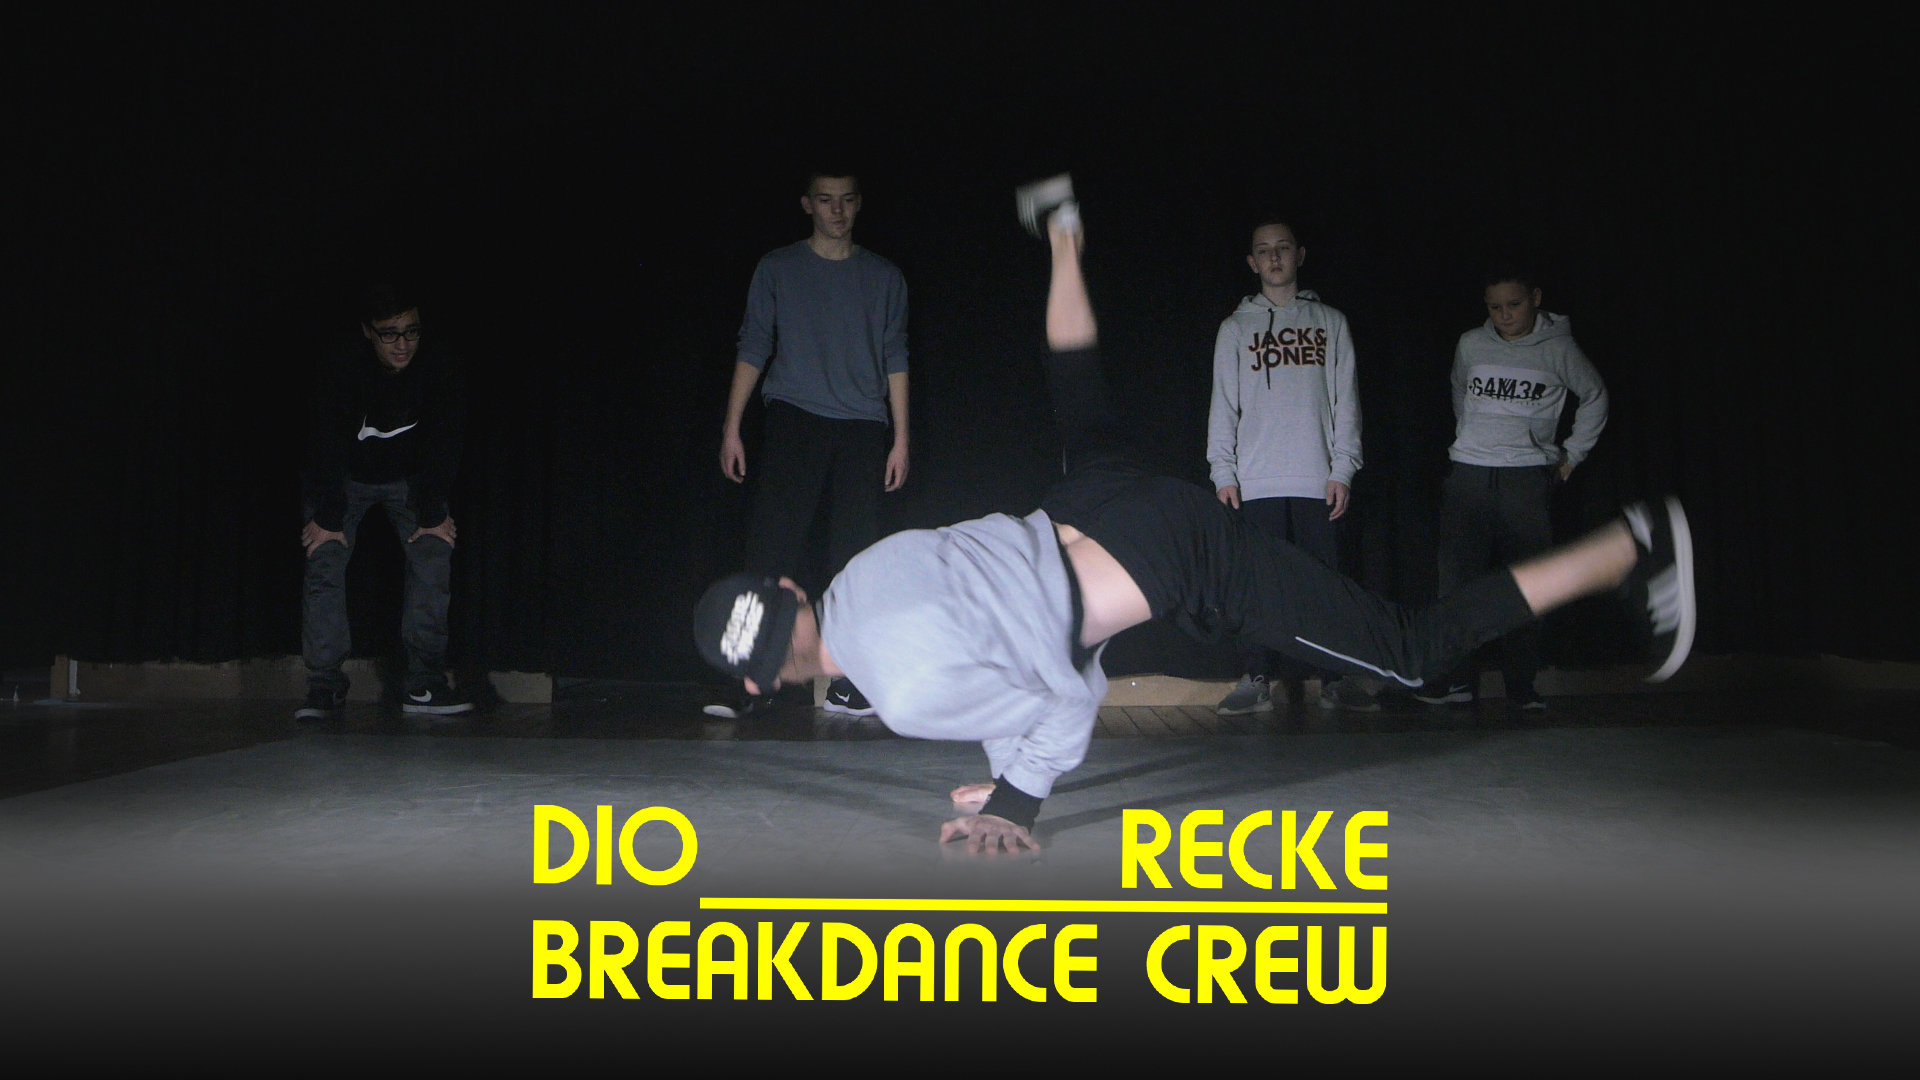 DIO Recke Breakdance-Crew